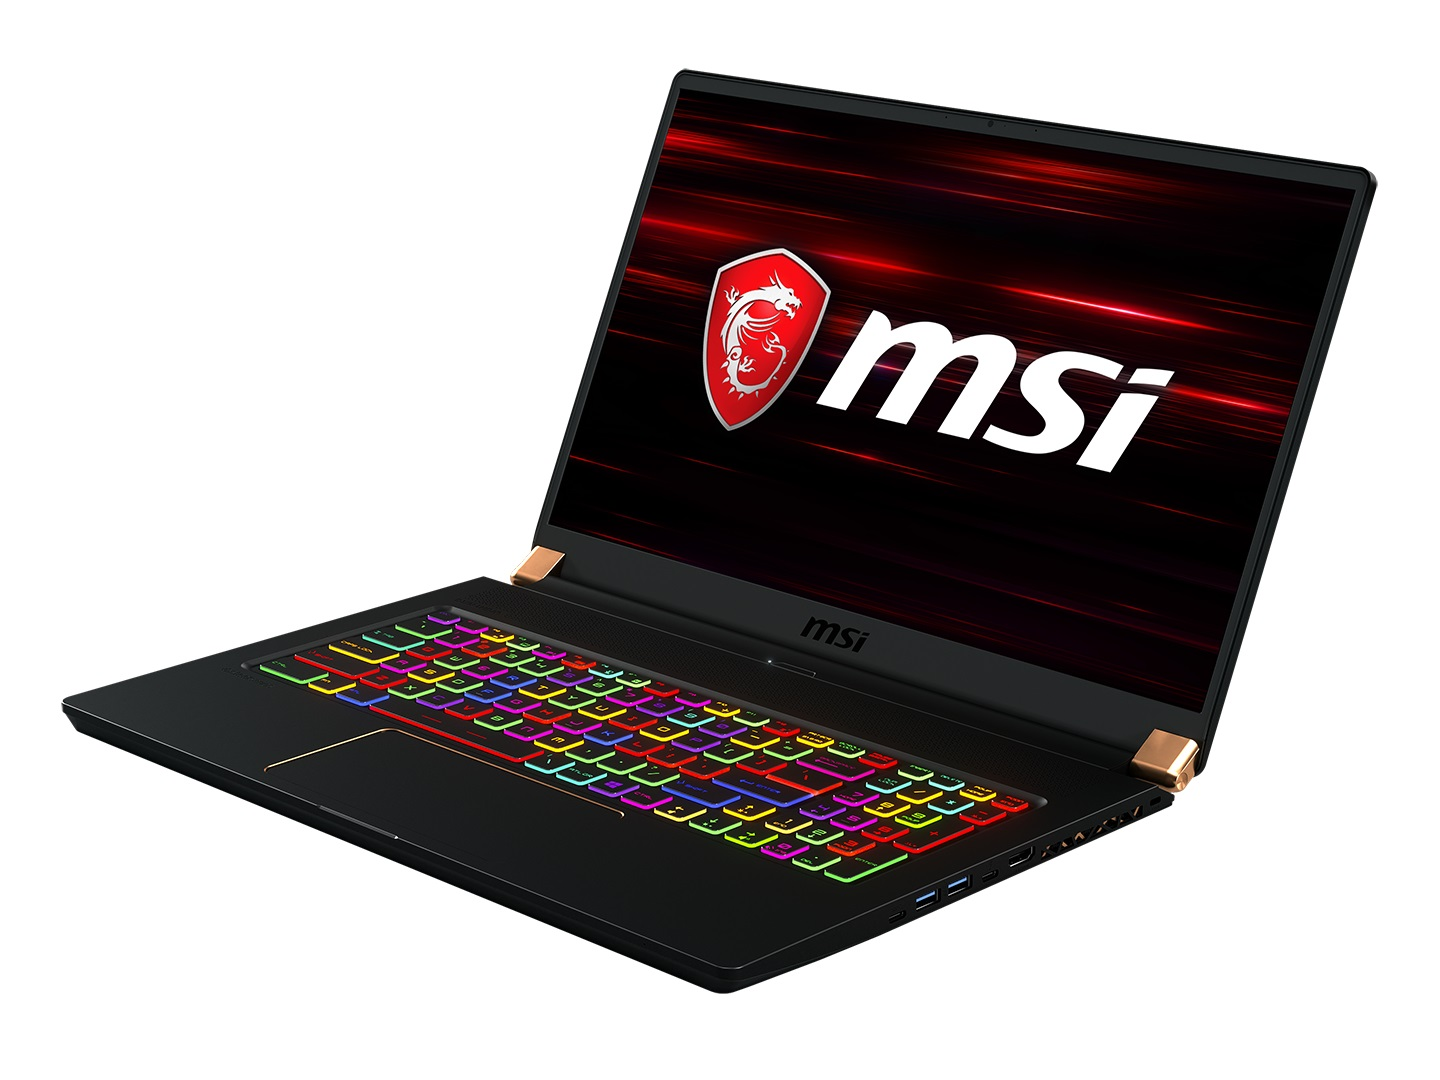 MSI GS75 8SG Stealth (i7-8750H, RTX 2080 Max-Q) Laptop Review